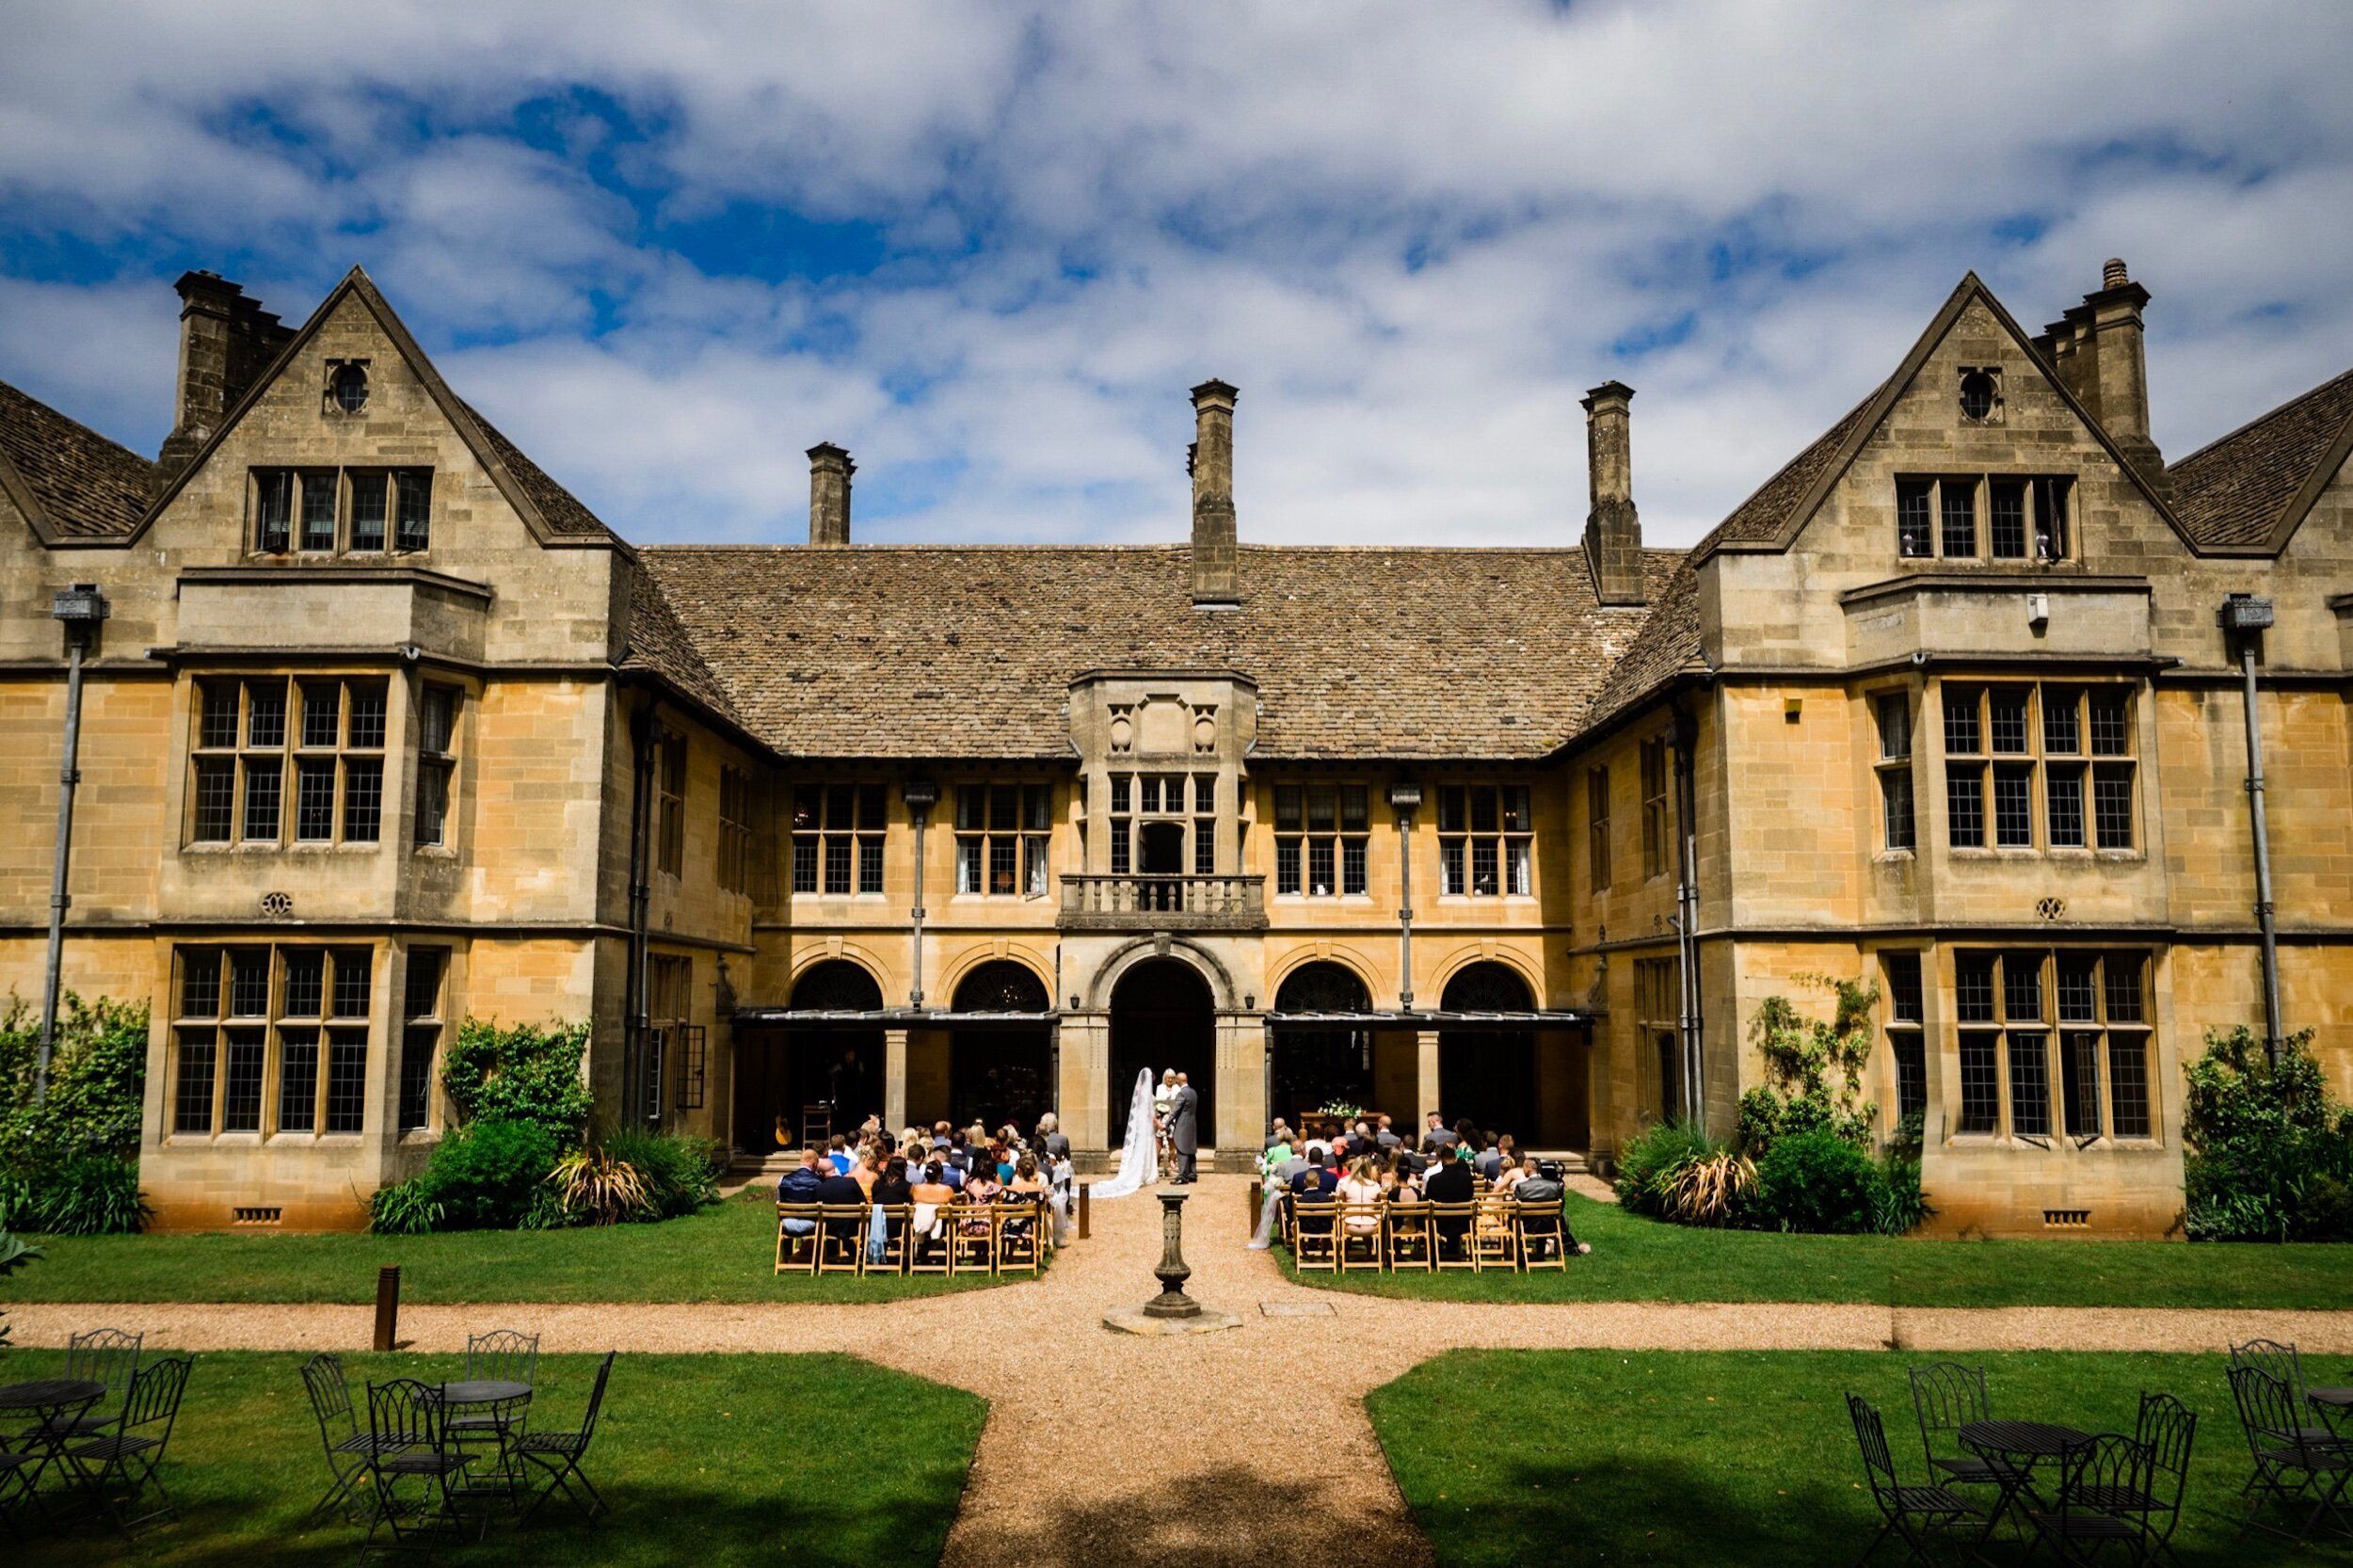 An outdoor wedding taking place at one of the best wedding venues in Bristol